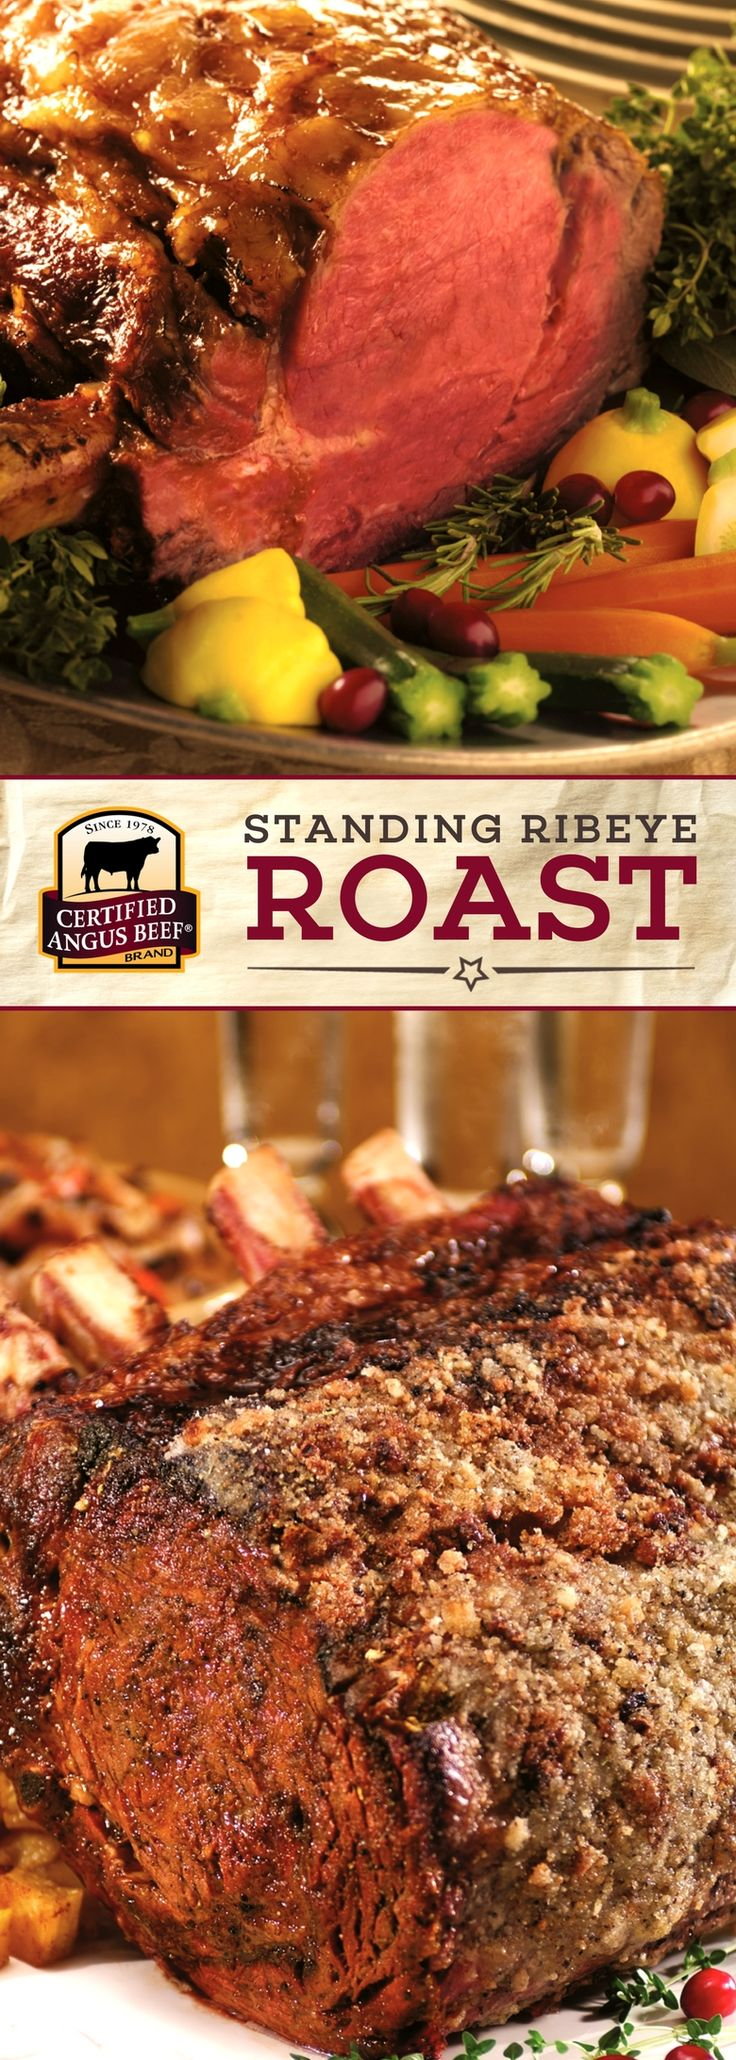 This is a SHOW STOPPER! The Classic Christmas roast! Certified Angus Beef®️️️️️️️️️️️️️️ brand Standing Ribeye Roast has rich flavor, juicy tenderness and a majestic appearance perfect for your holiday dinner.  A rib roast is easy to make with help from our Roast Perfect app and always makes an impressive centerpiece for your holiday meal #bestangusbeef #certifiedangusbeef #roastperfect #roastrecipe #beefrecipe #holidayrecipes